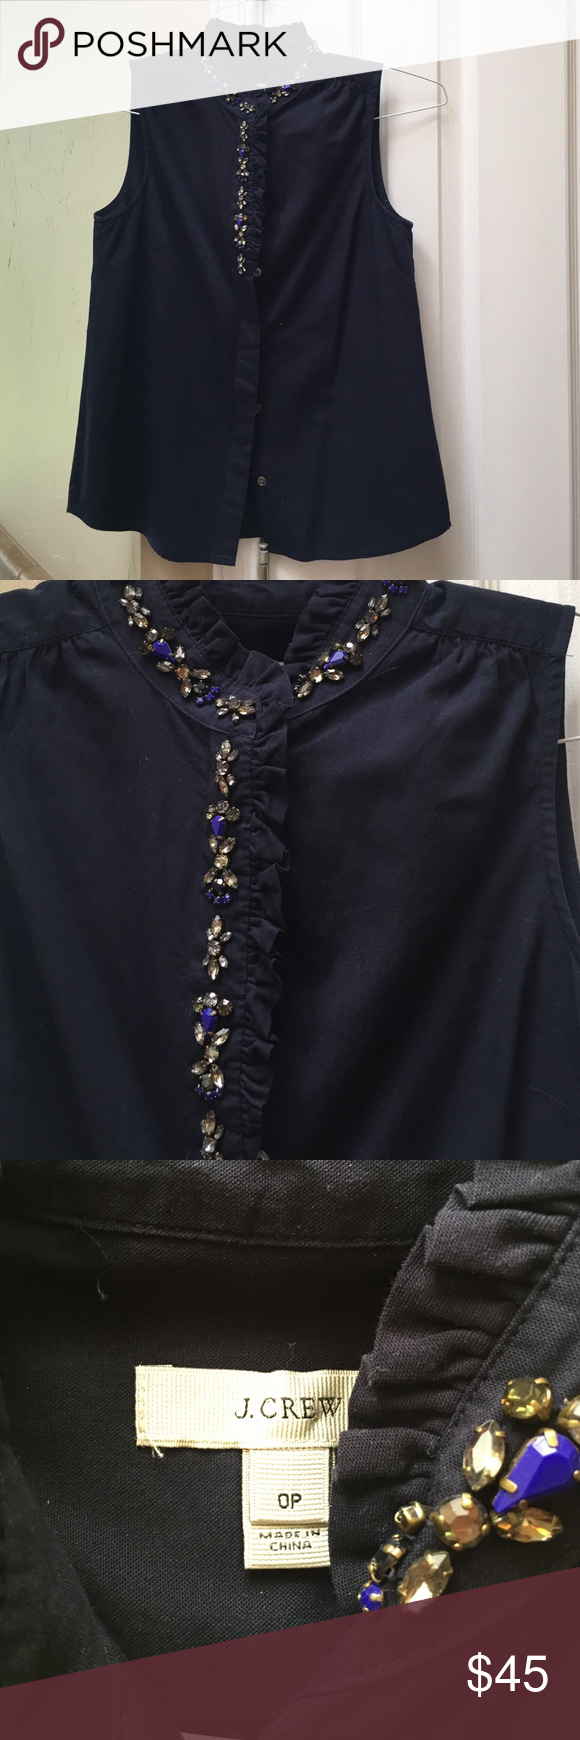 JCrew navy blue jeweled tank. Size 0P Darling navy blue blouse. From JCrew. Worn only a few times, perfect condition! Beautiful jewels and ruffles lining the collar. J. Crew Tops Blouses